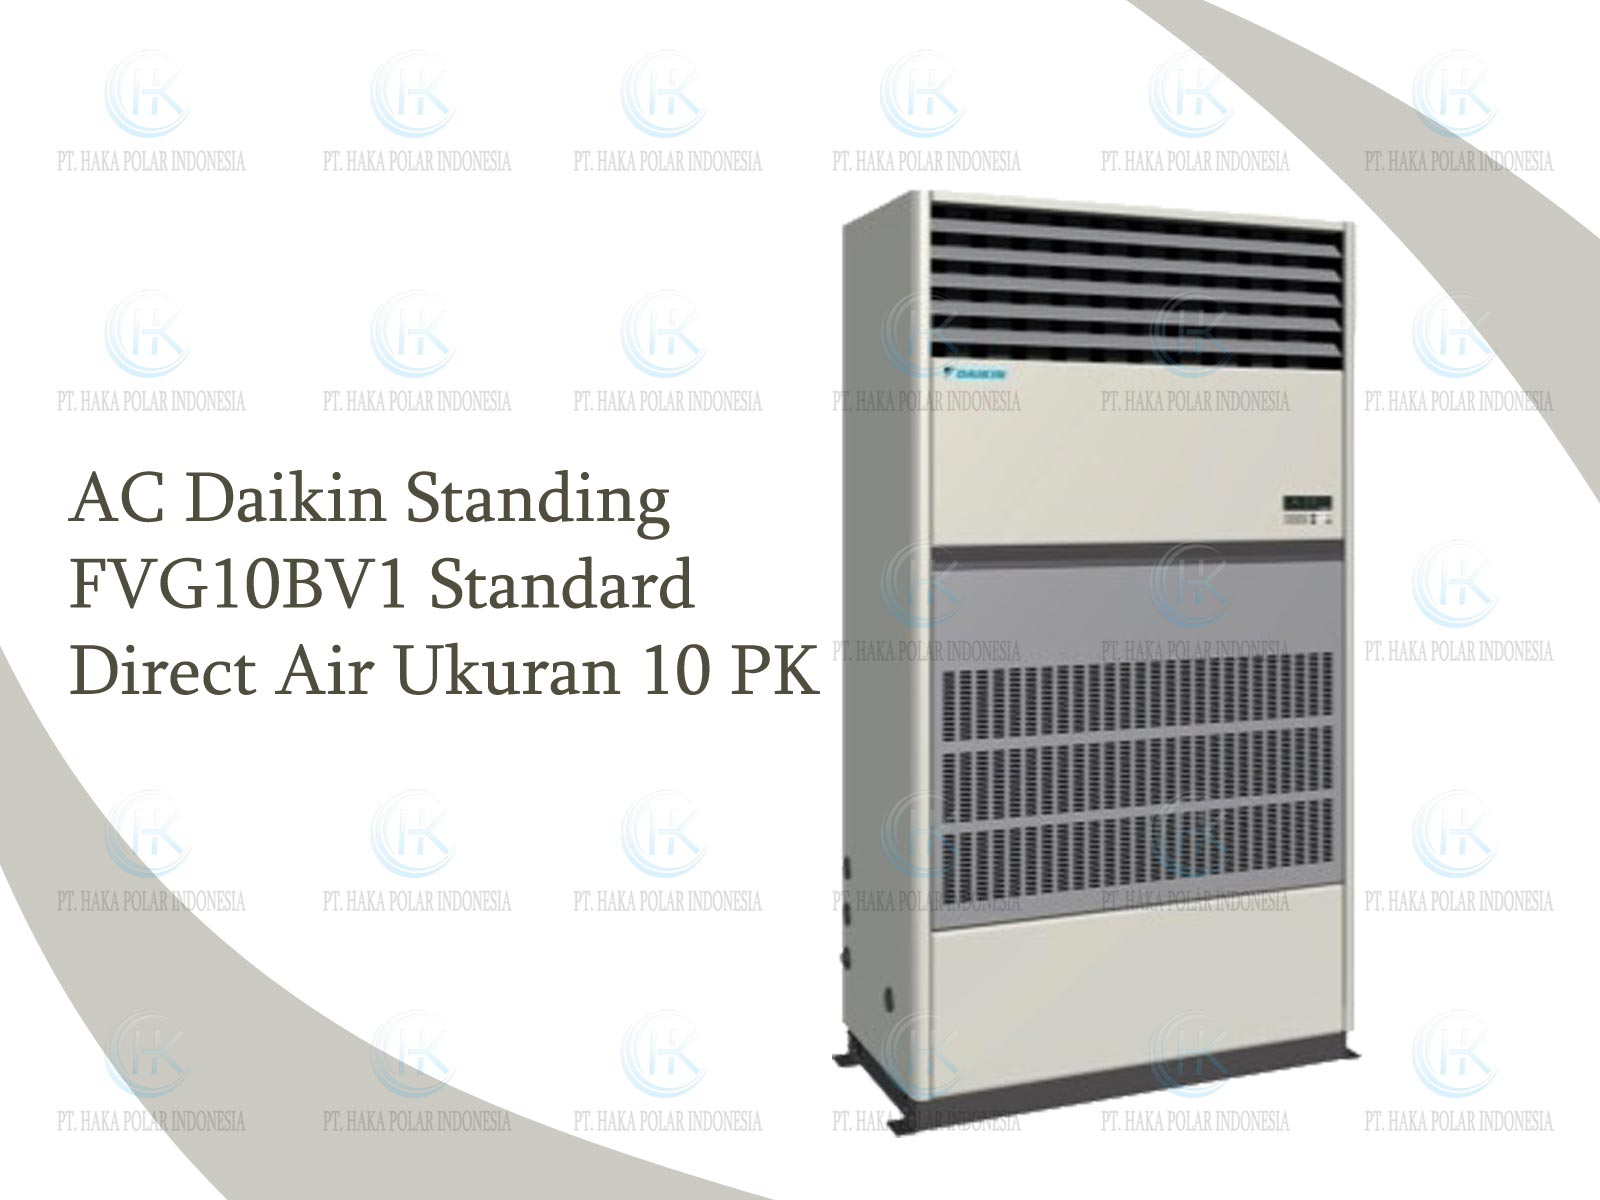 AC Daikin Package FVG10BV1 10 PK Floor Standing Standard Direct Air